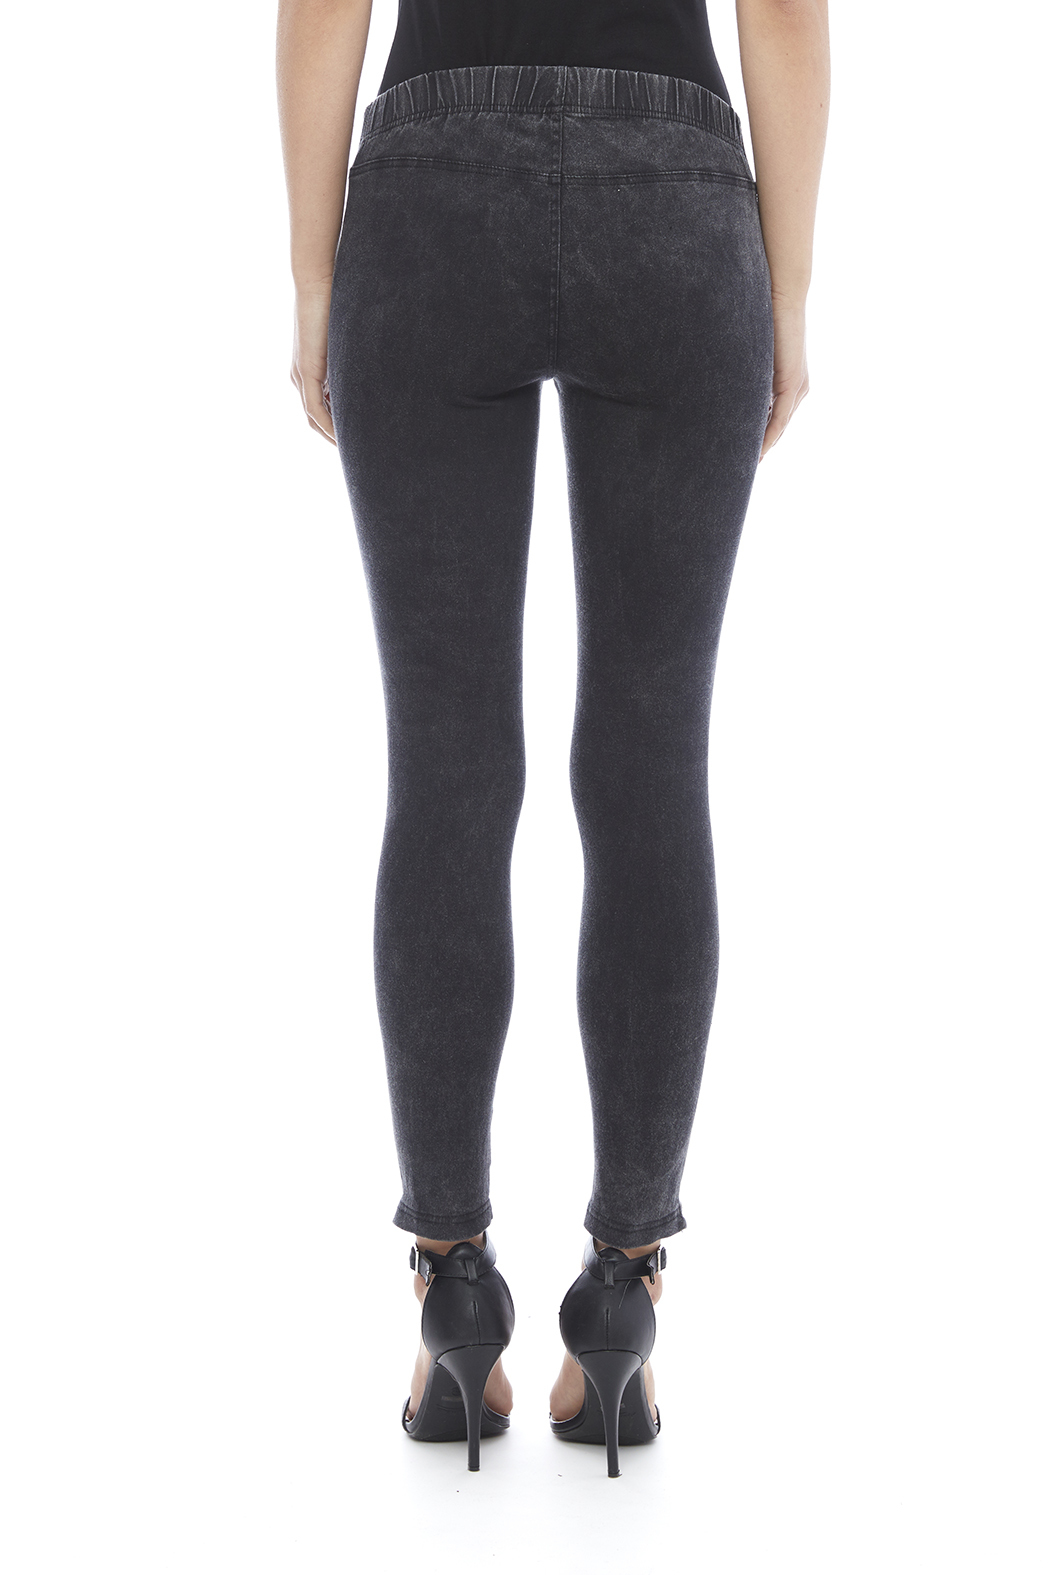 Beulah Distressed Legging from Missouri by Zsa Zsa u0026 Daphneu0026#39;s u2014 Shoptiques